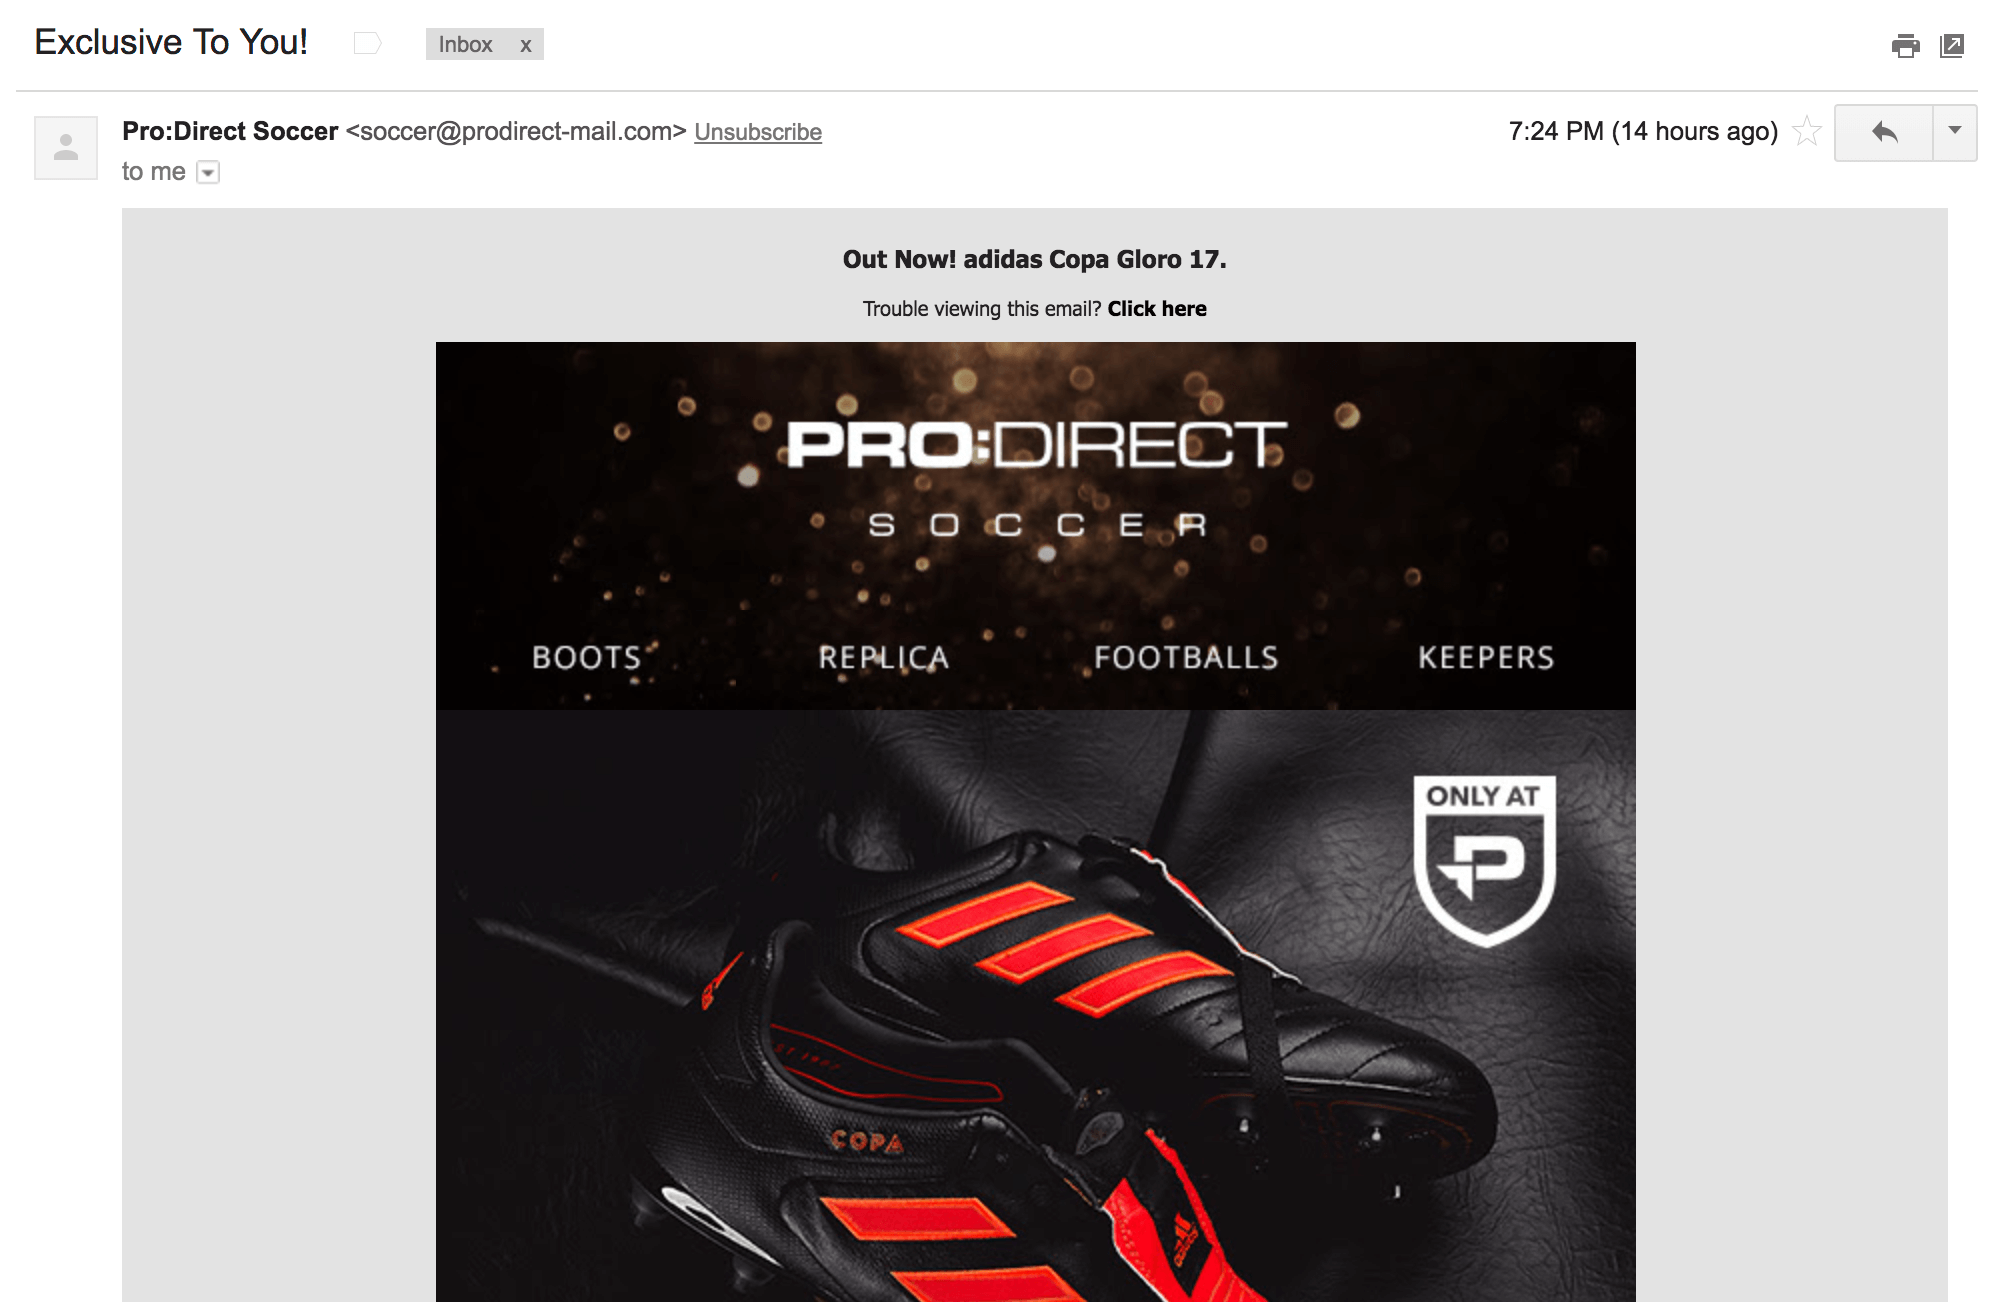 Screenshot showing an email by ProDirect